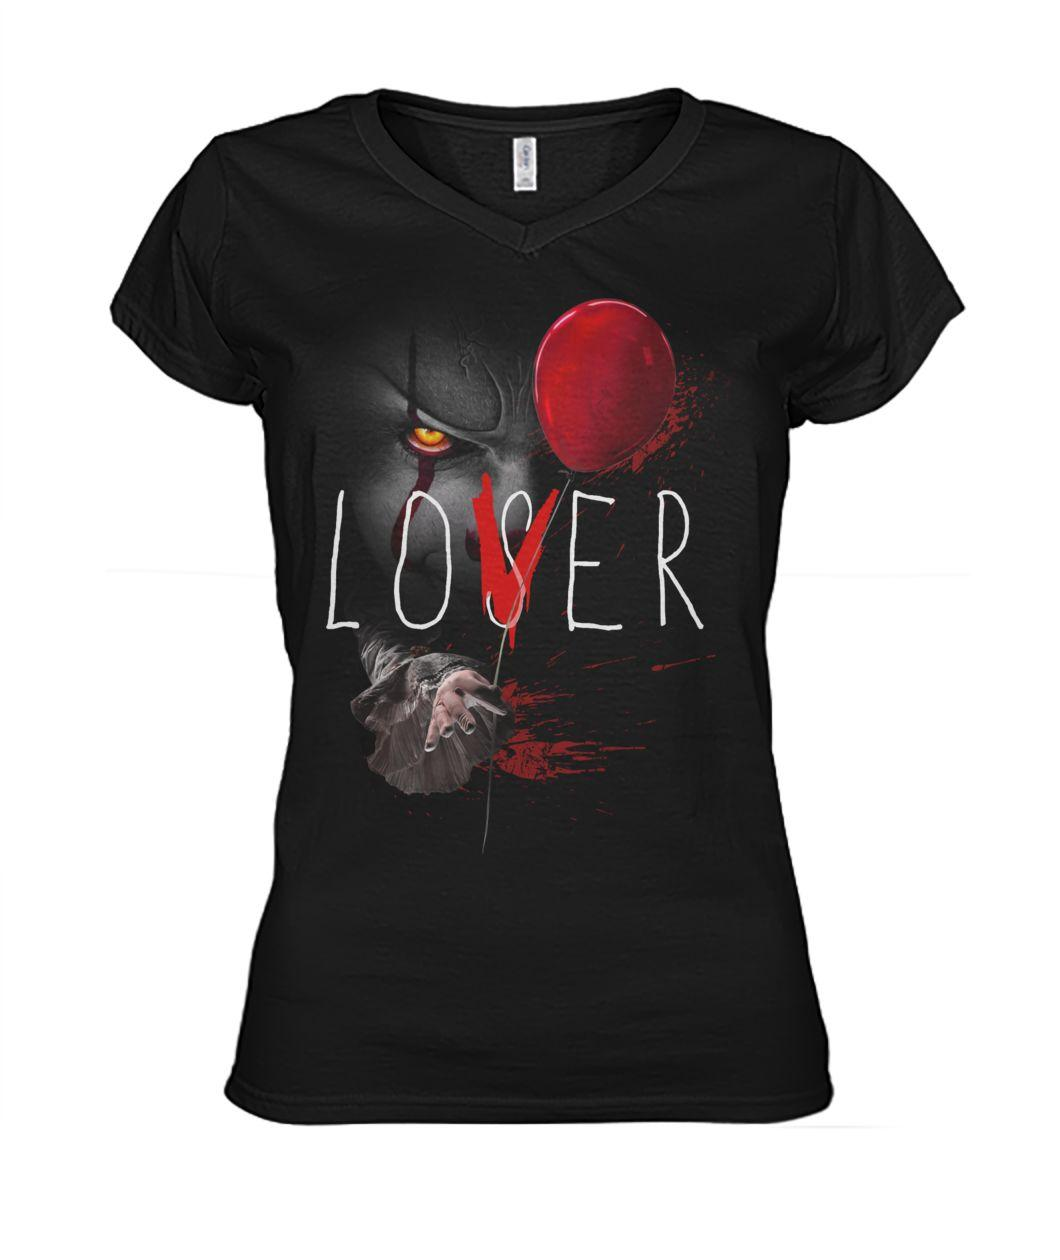 Pennywise It Lover Loser Halloween V-neck t-shirt